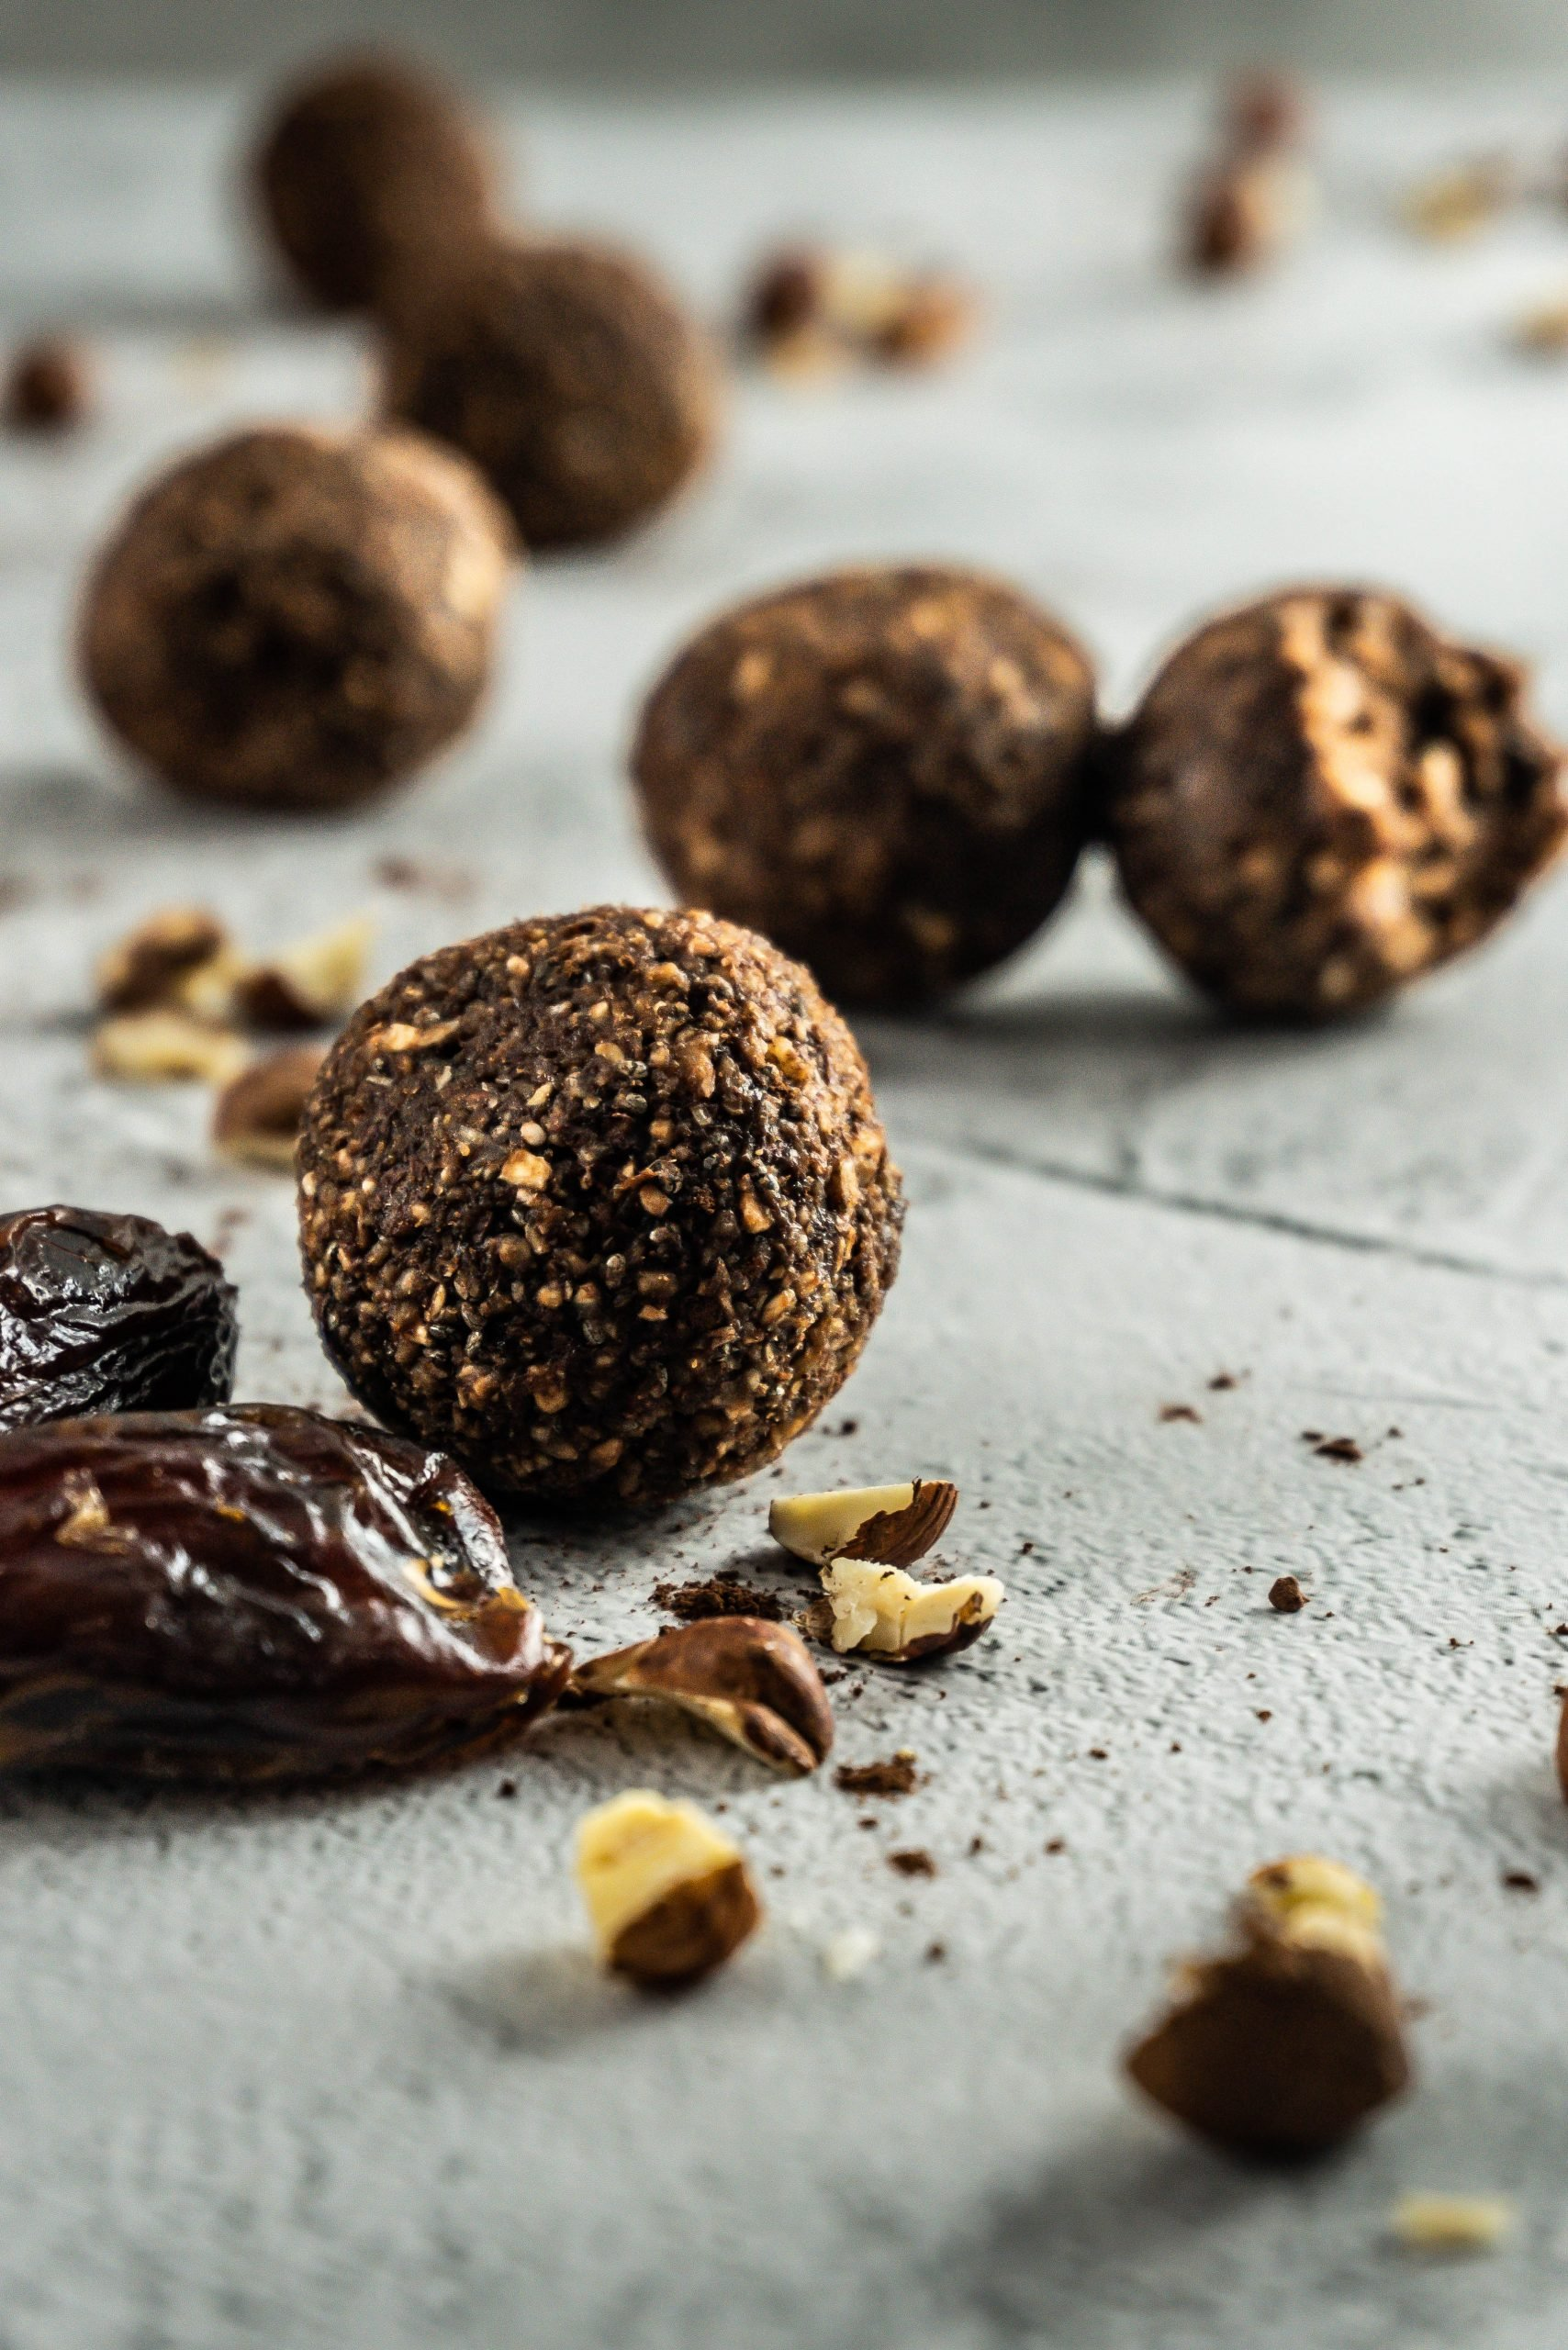 Chocolate Hazelnut Energy Ball in focus surrounded by dates and chopped hazelnuts